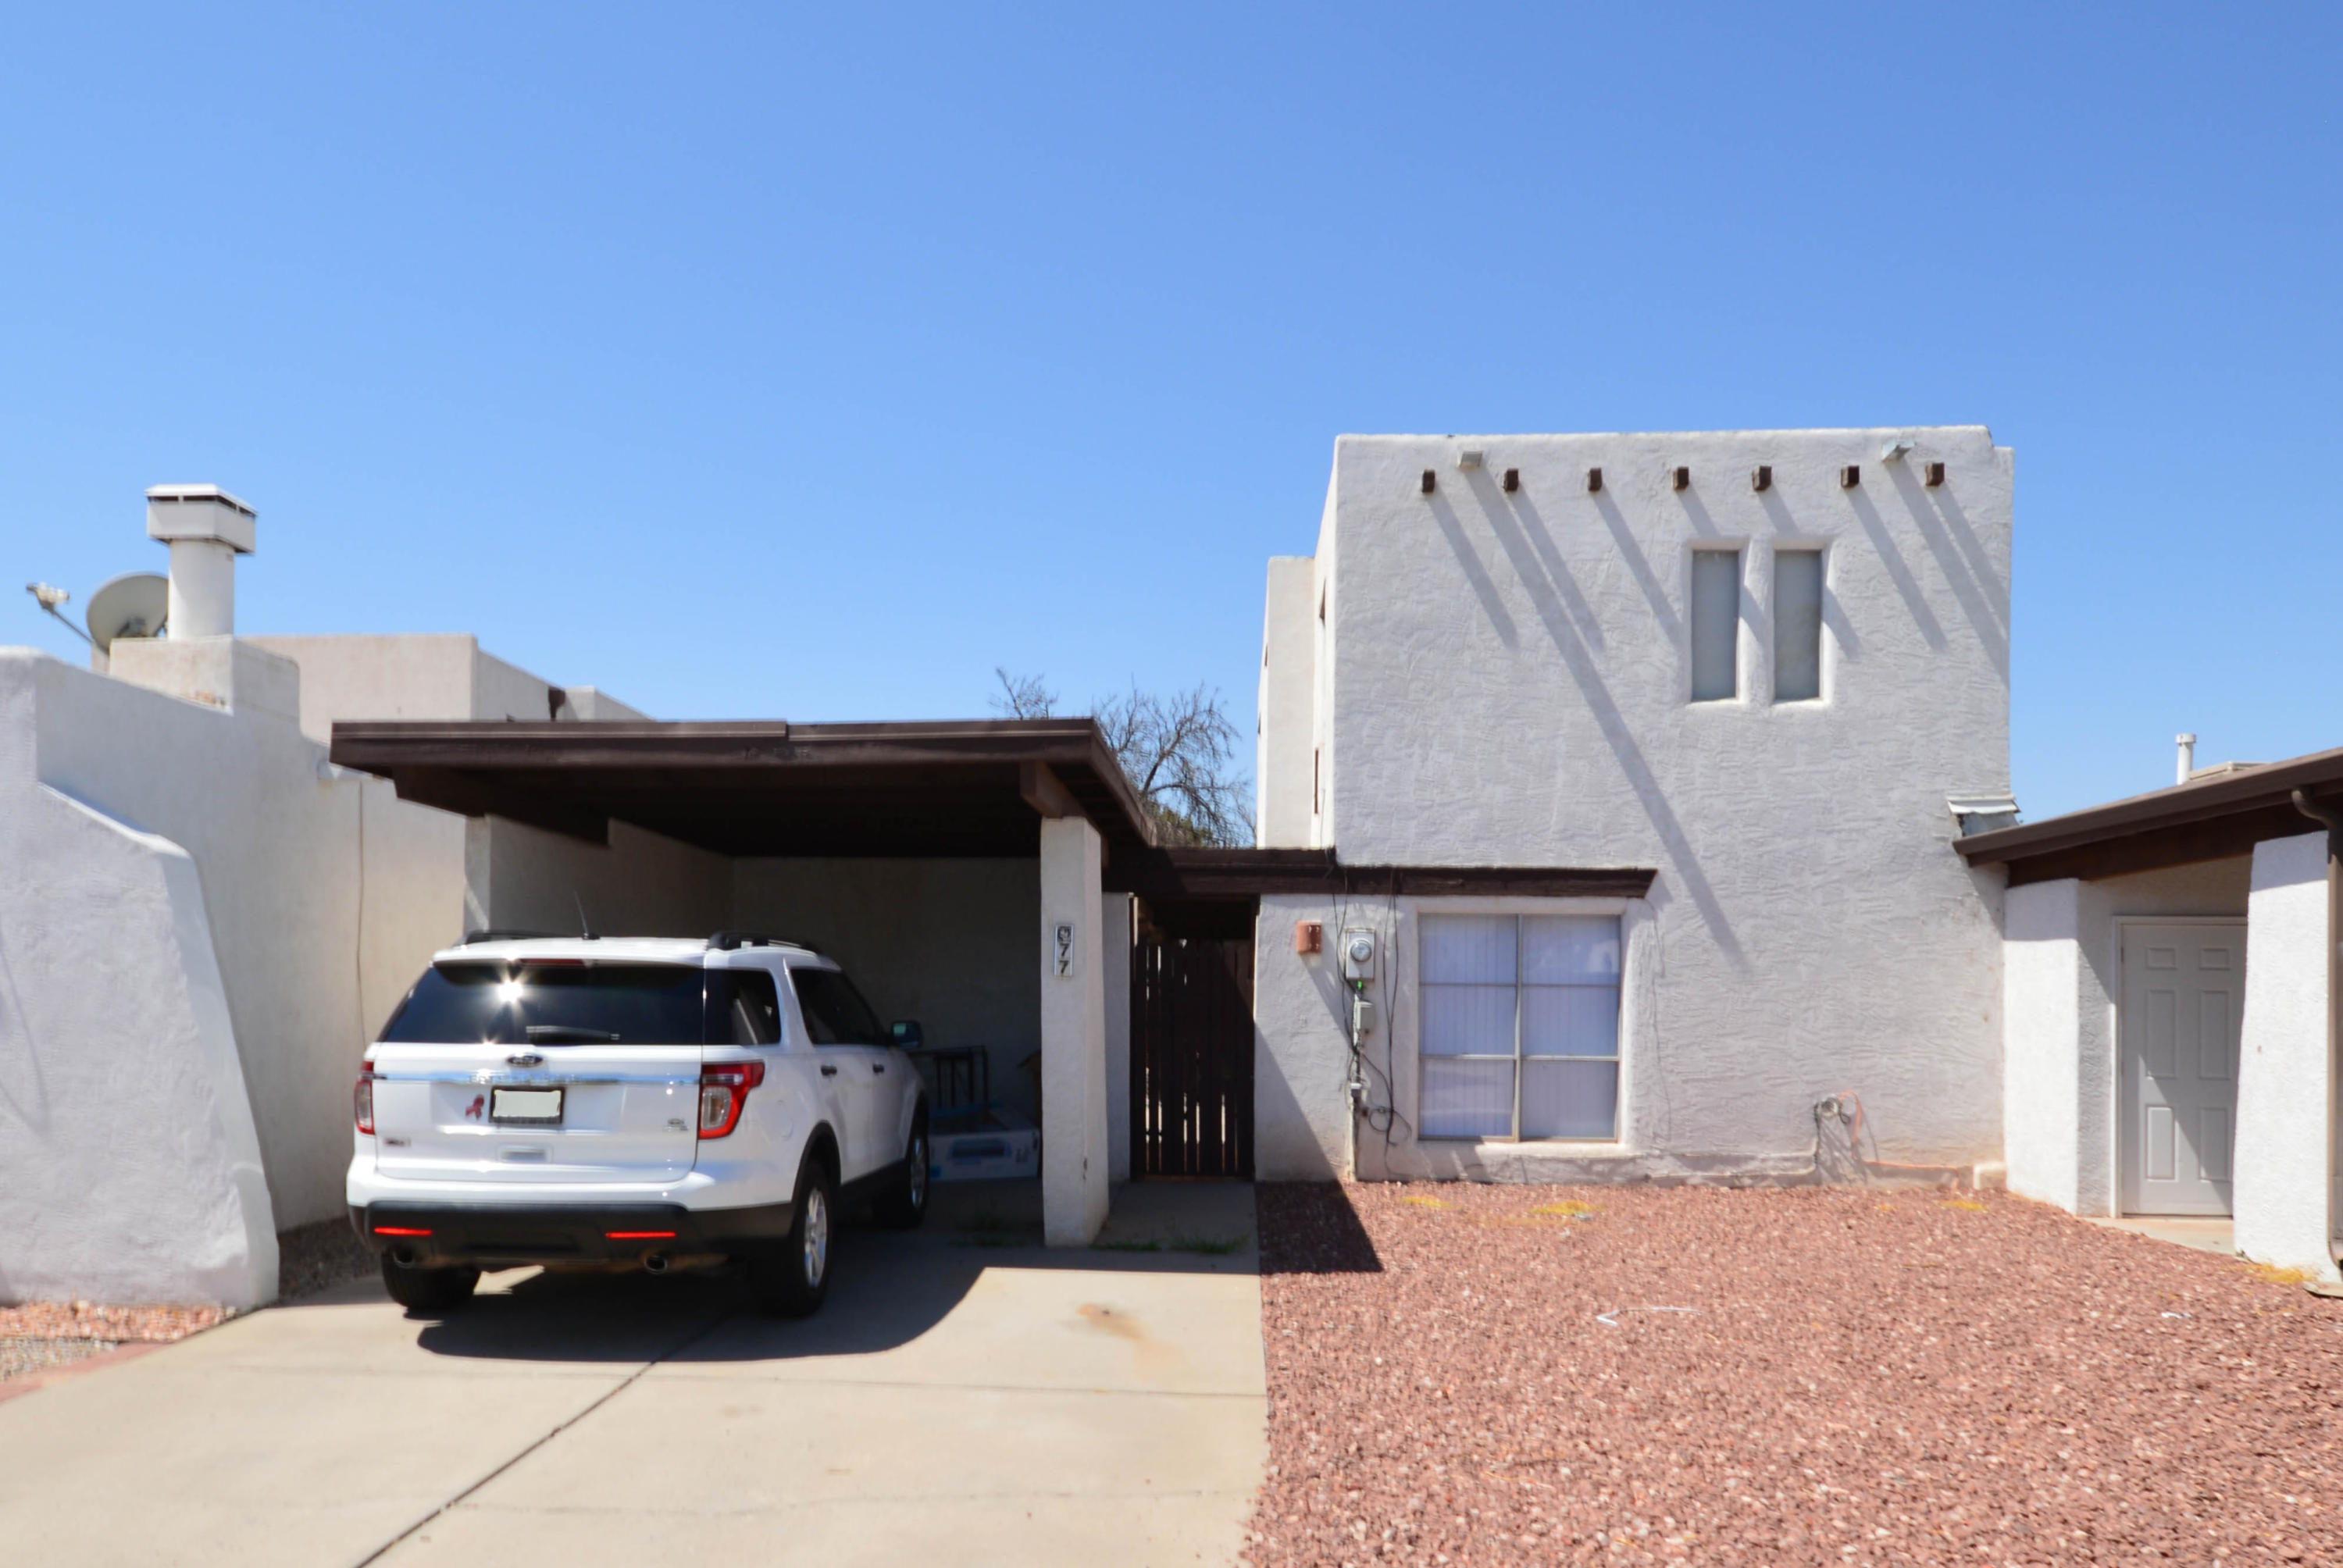 One of Northwest Albuquerque and Northwest Heights 3 Bedroom Homes for Sale at 77 NW Calle Arroyo Seco